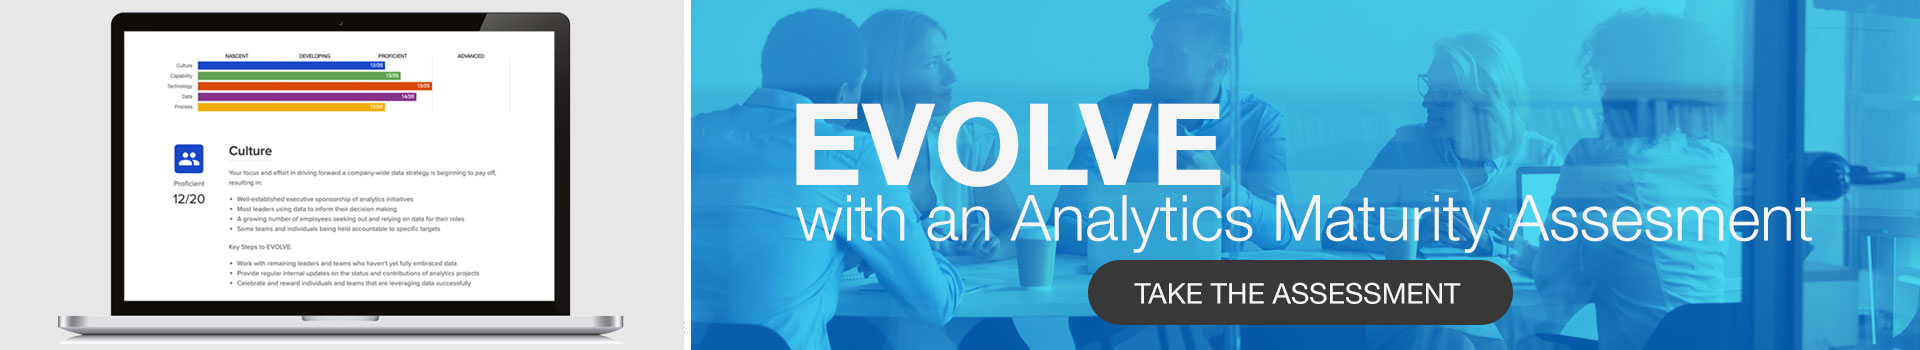 evolve with an analytics maturity assessment - take the assessment